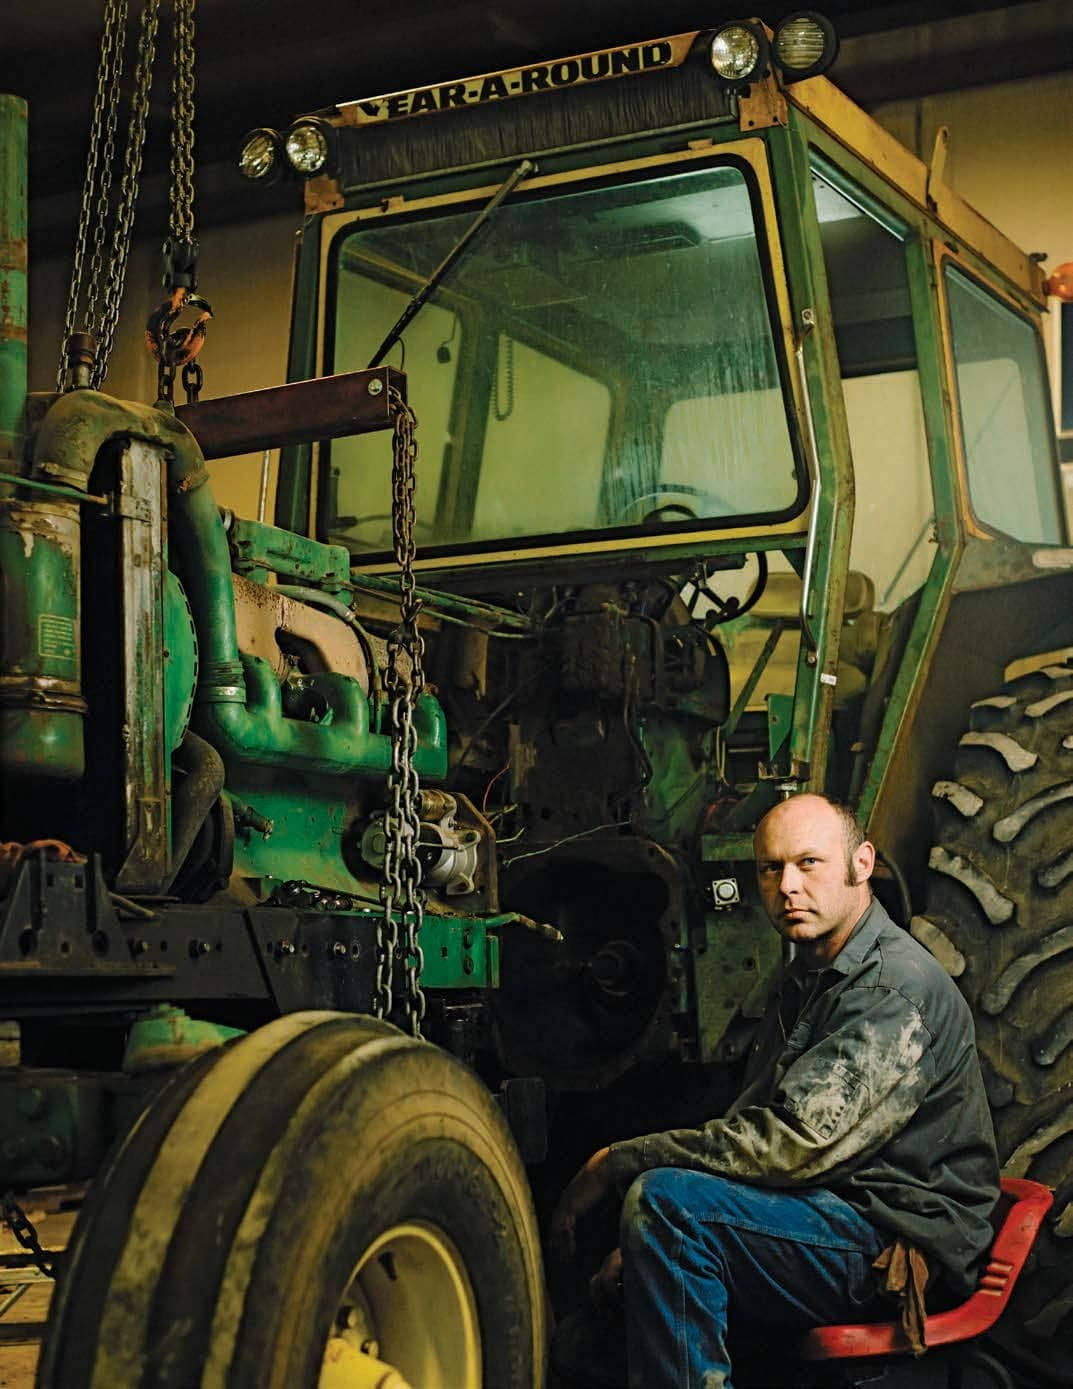 WHO REALLY OWNS A JOHN DEERE?